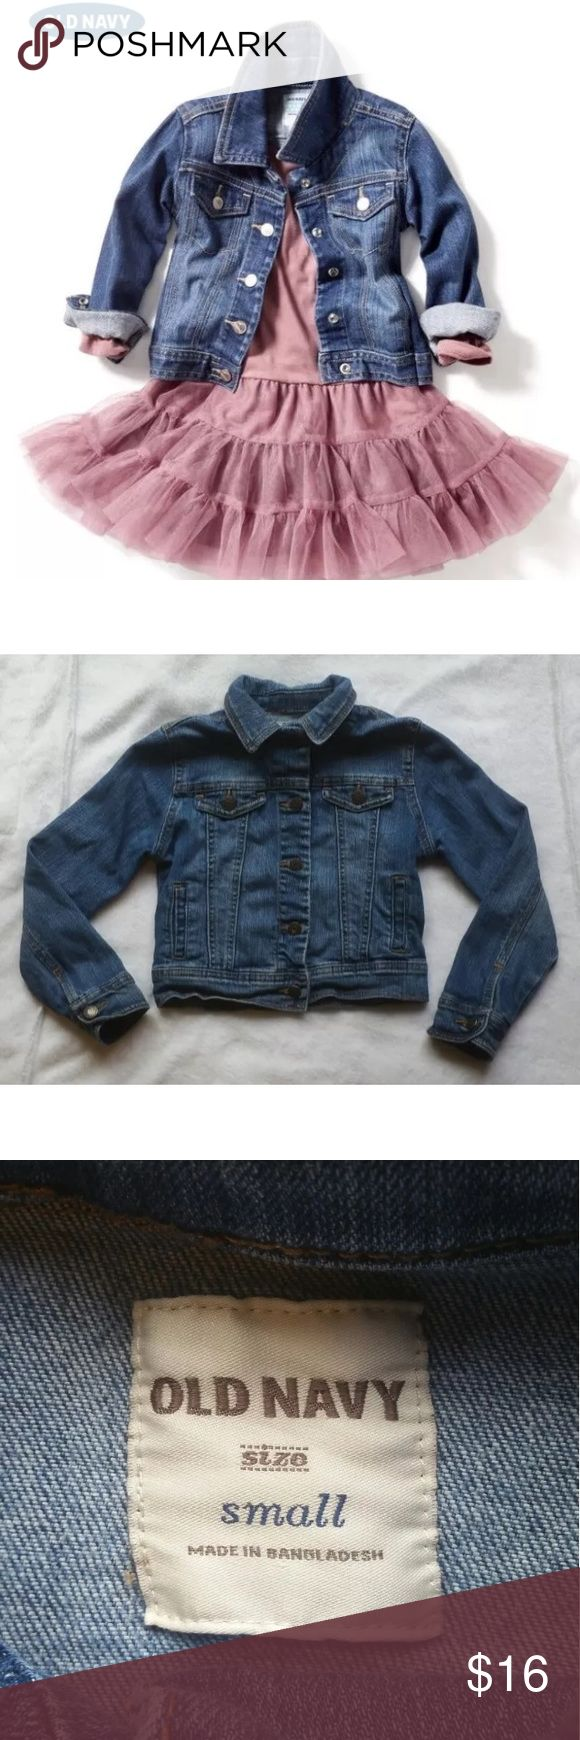 Old Navy Jean Jacket Size S (6-7) Old Navy Jackets & Coats Jean Jackets